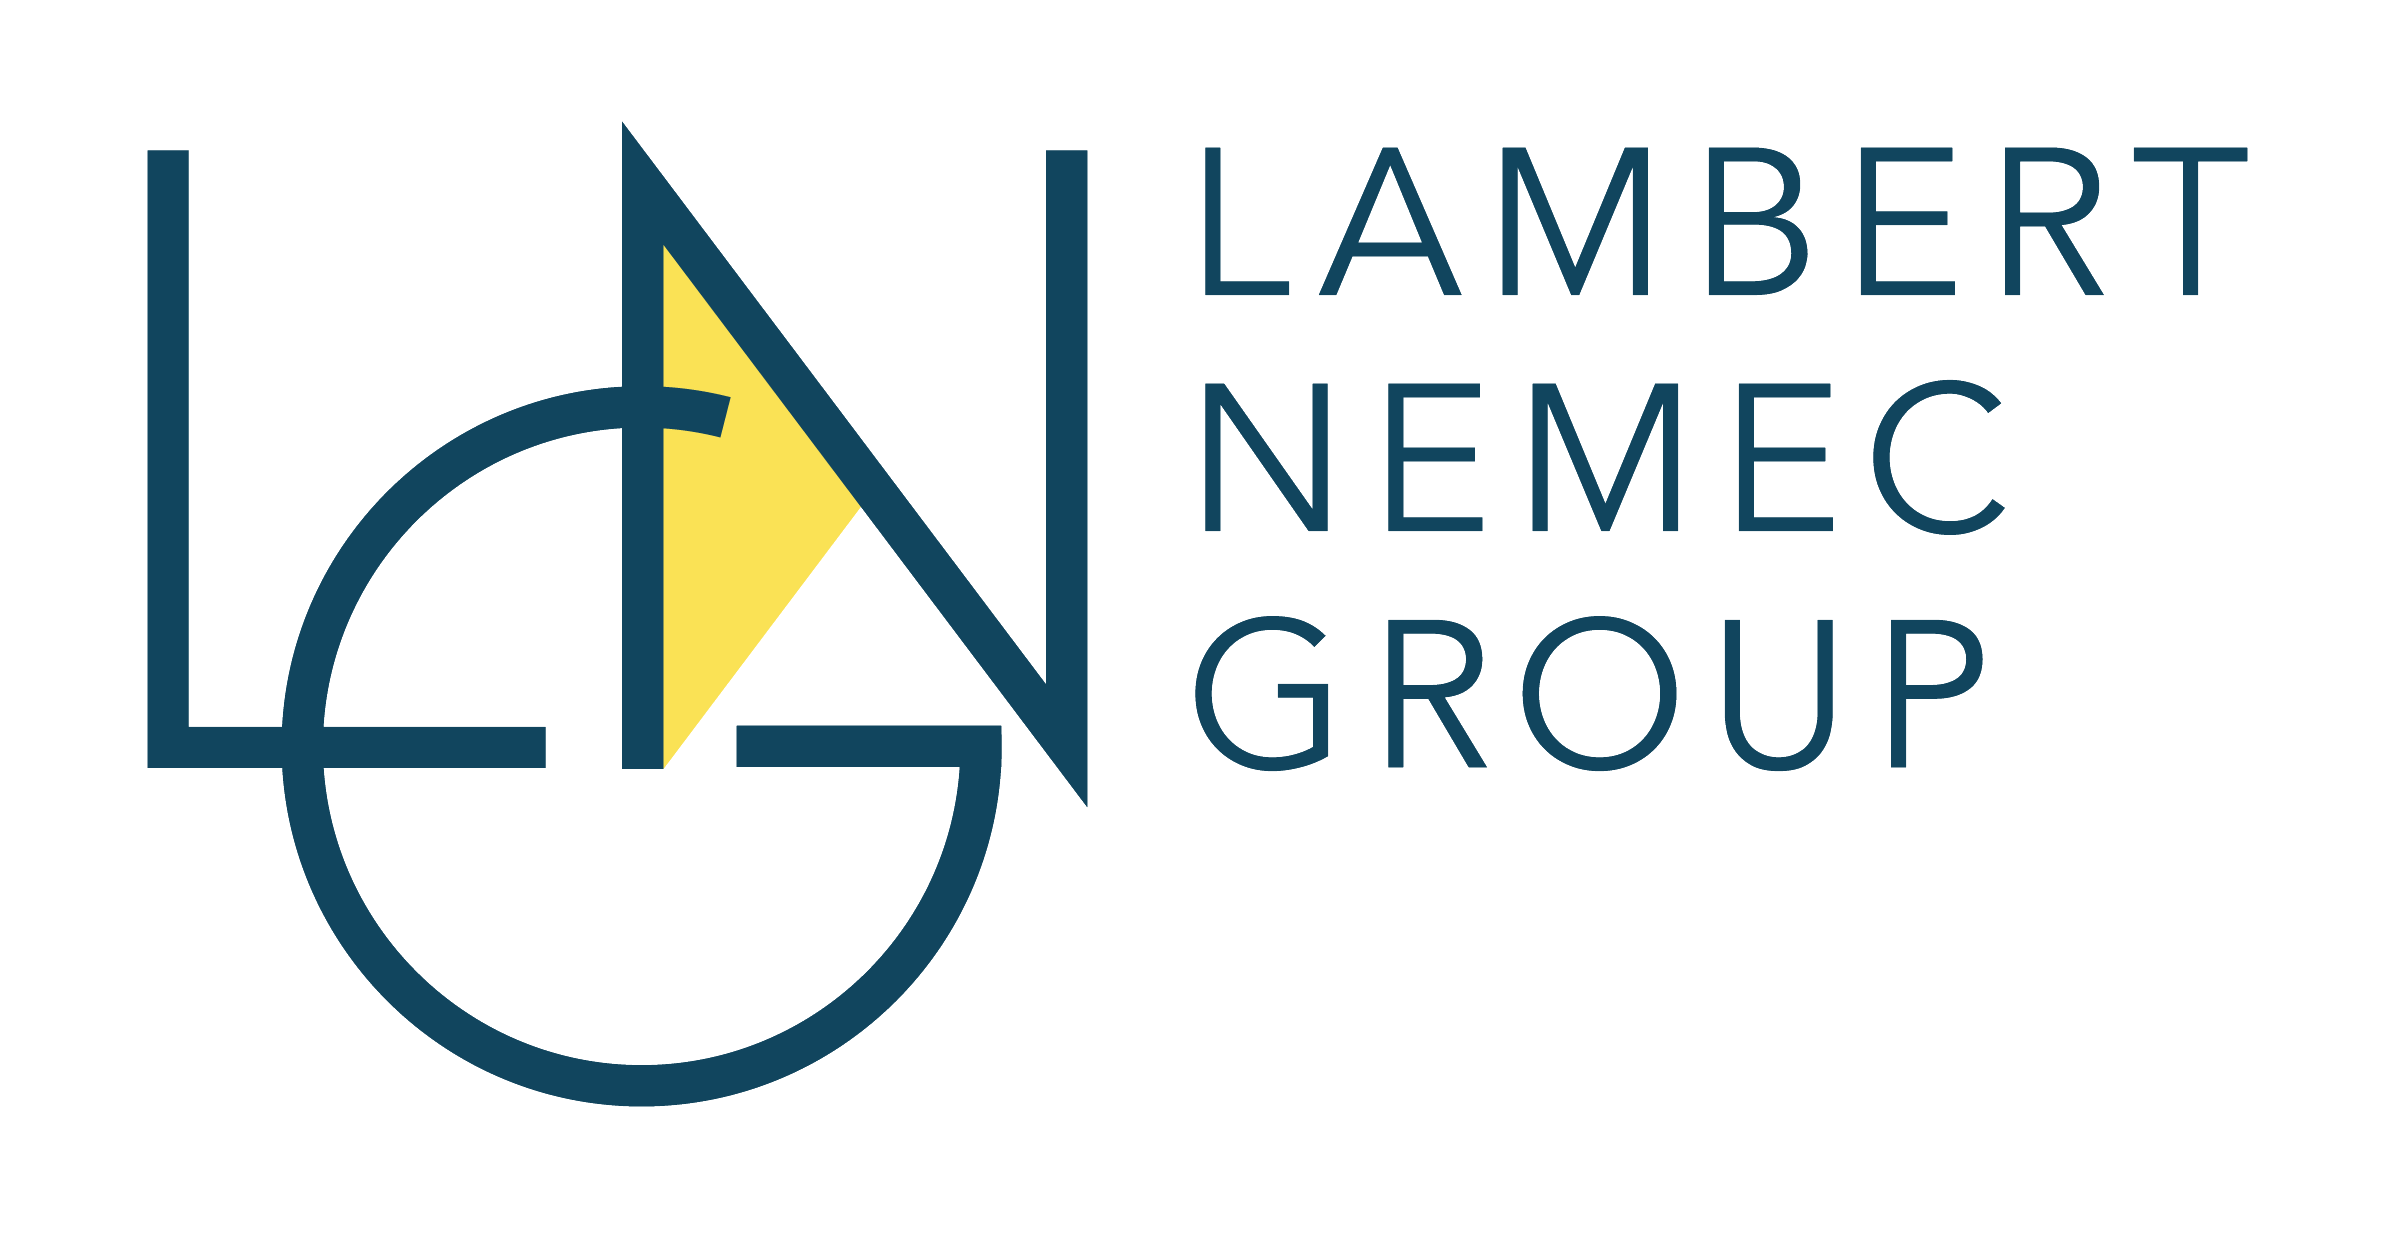 Lambert Nemec Group